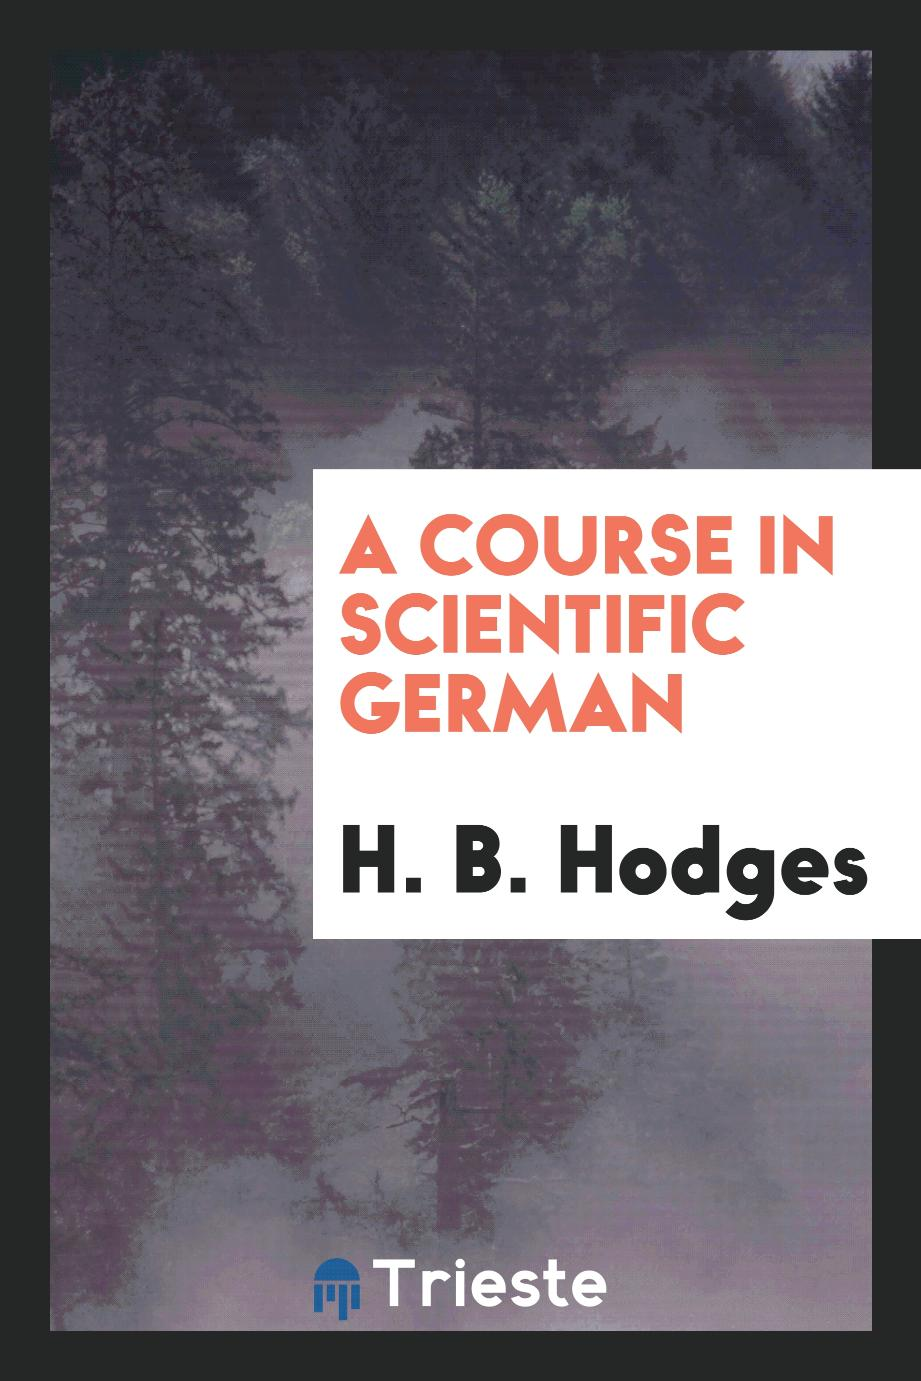 H. B. Hodges - A Course in Scientific German